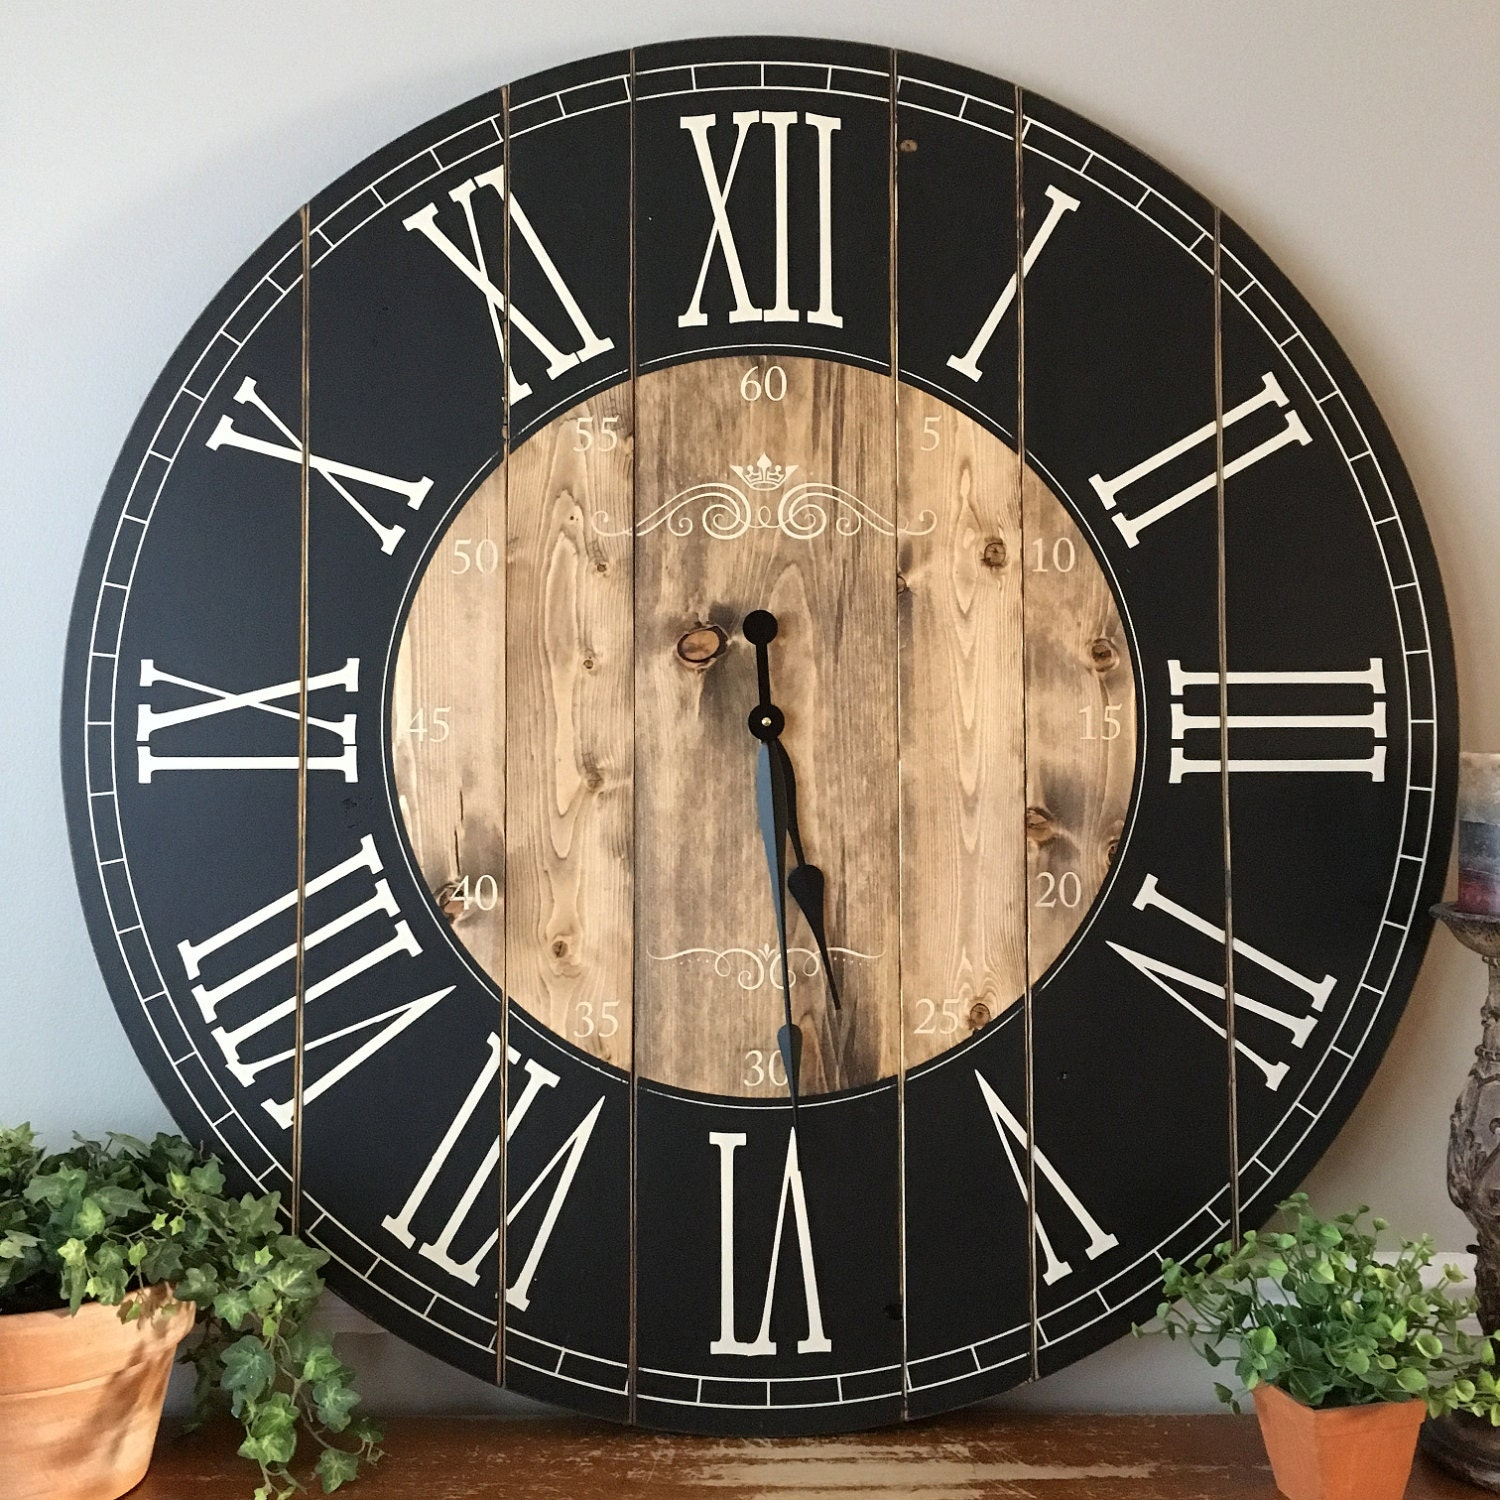 Unique Wall Clocks For Sale Philippines Popular Items For